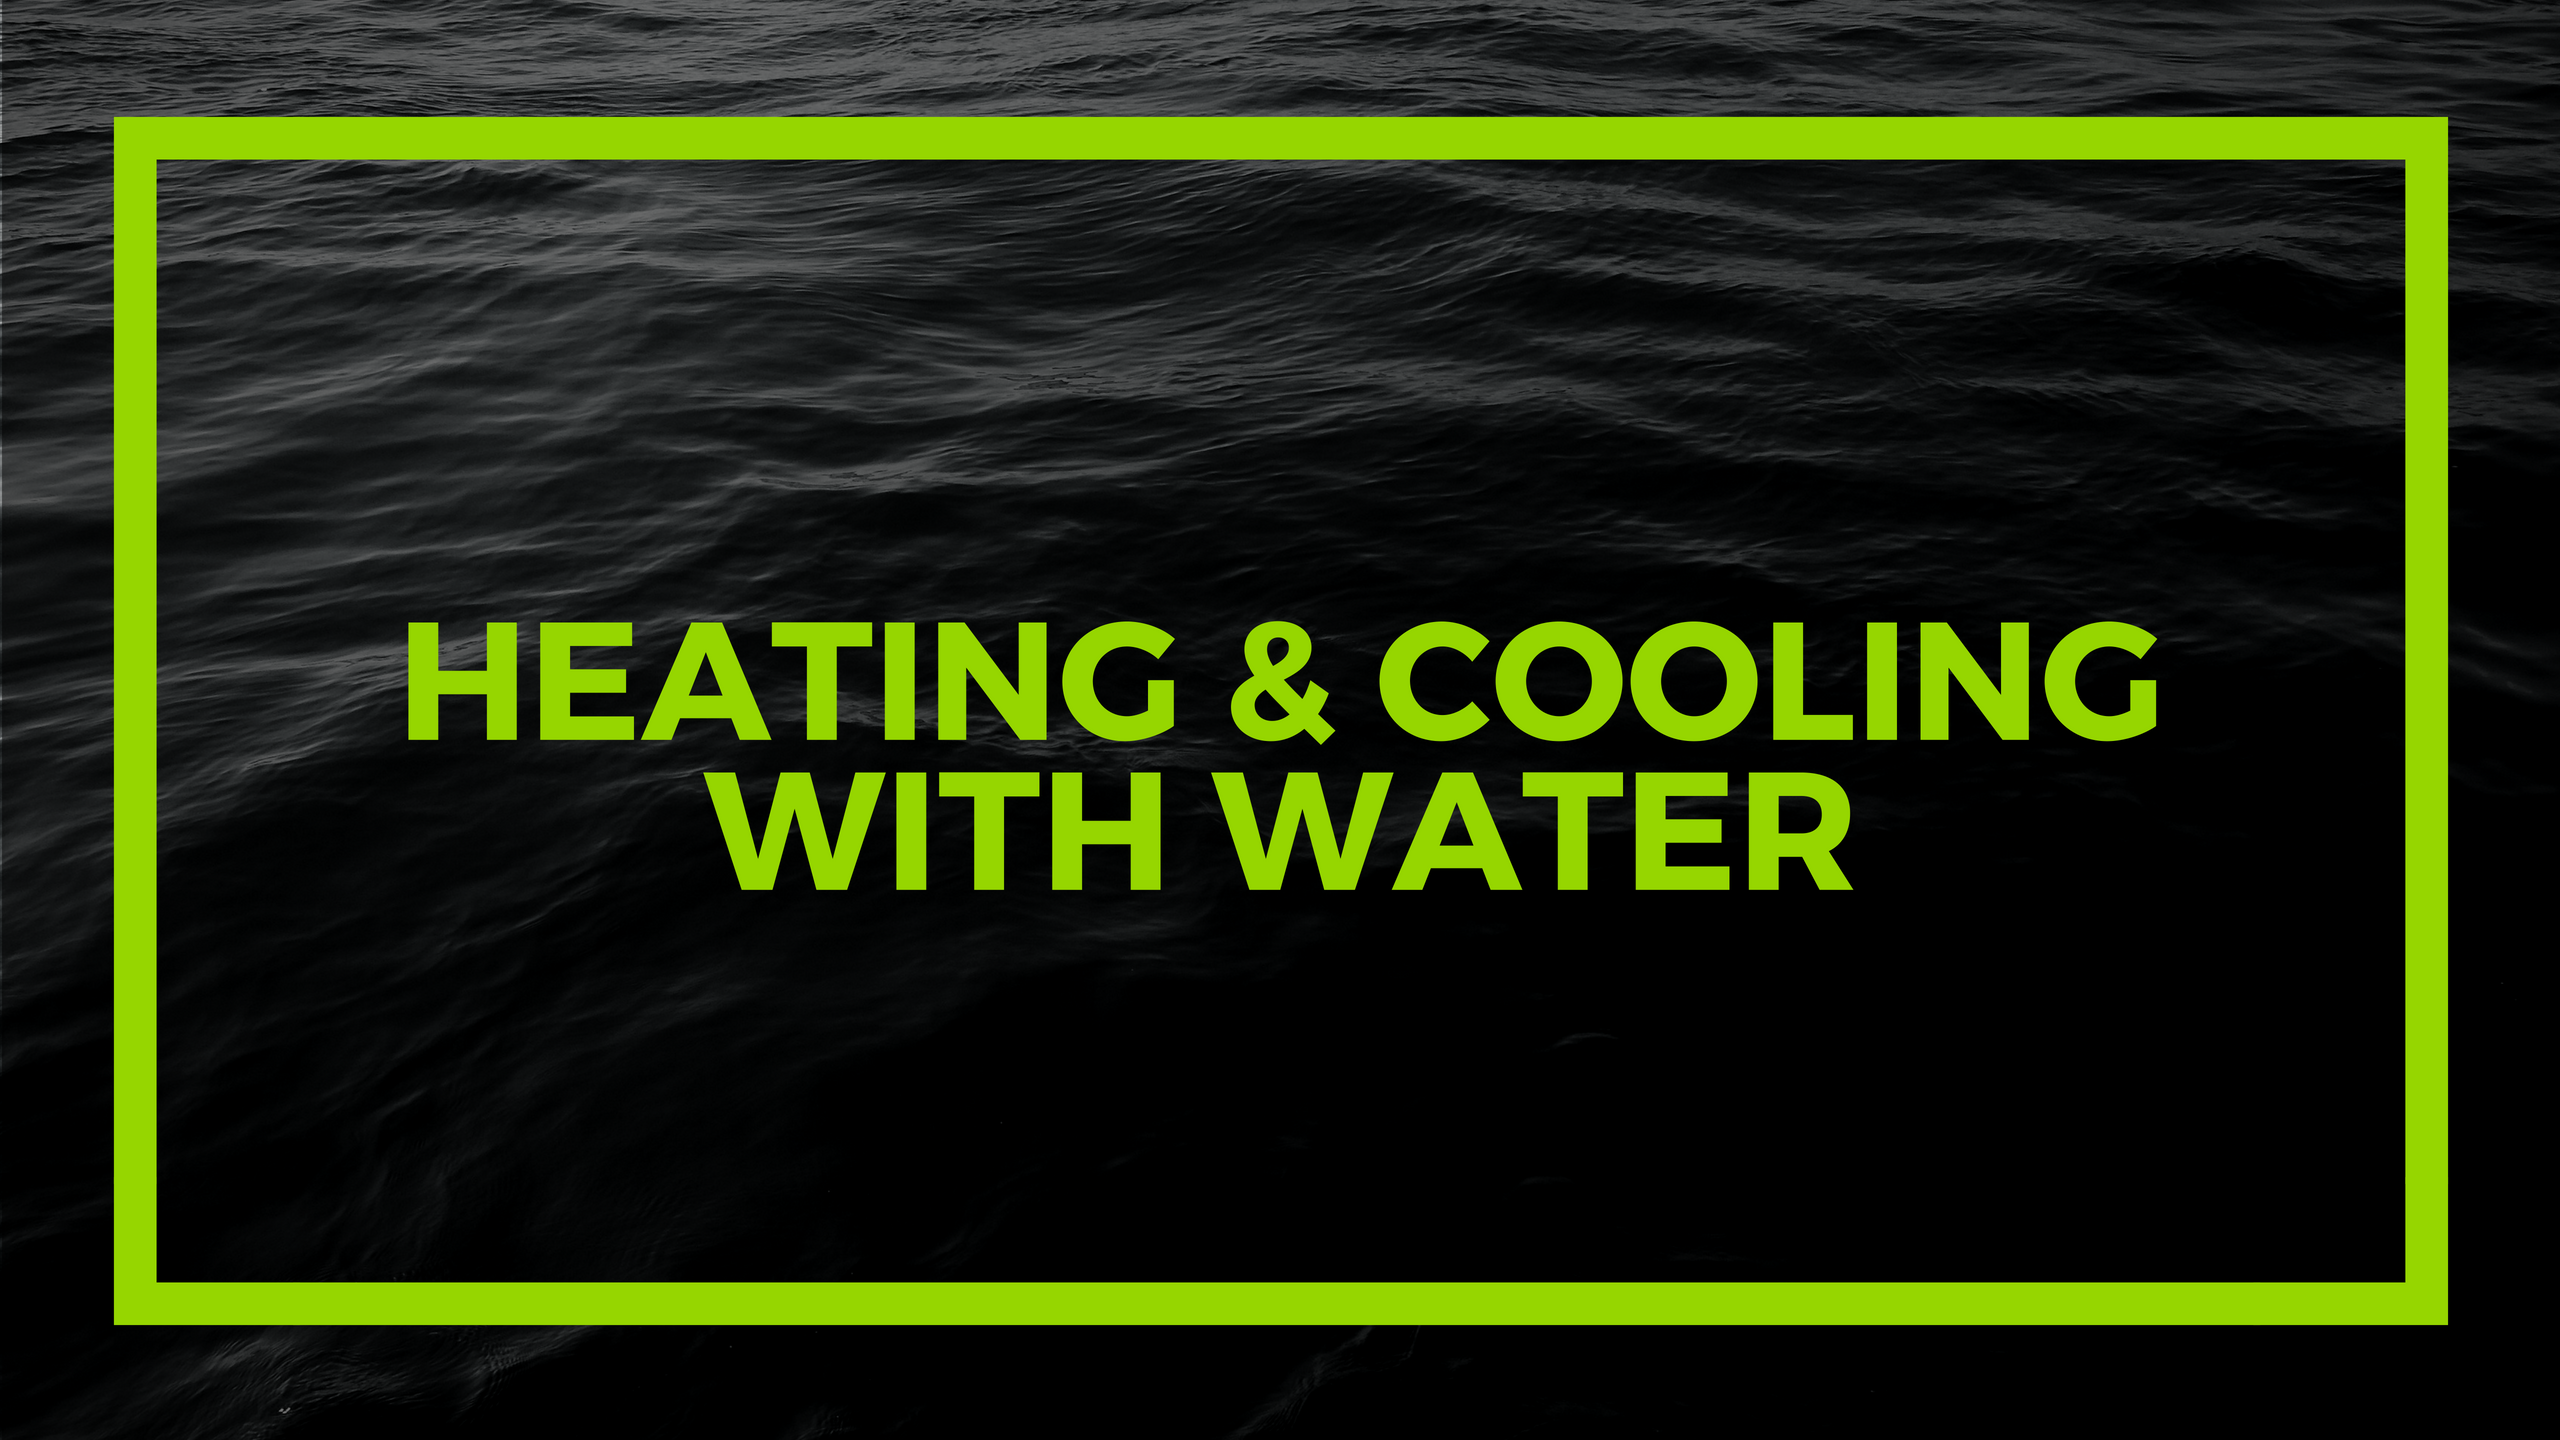 Heating and Cooling with Water